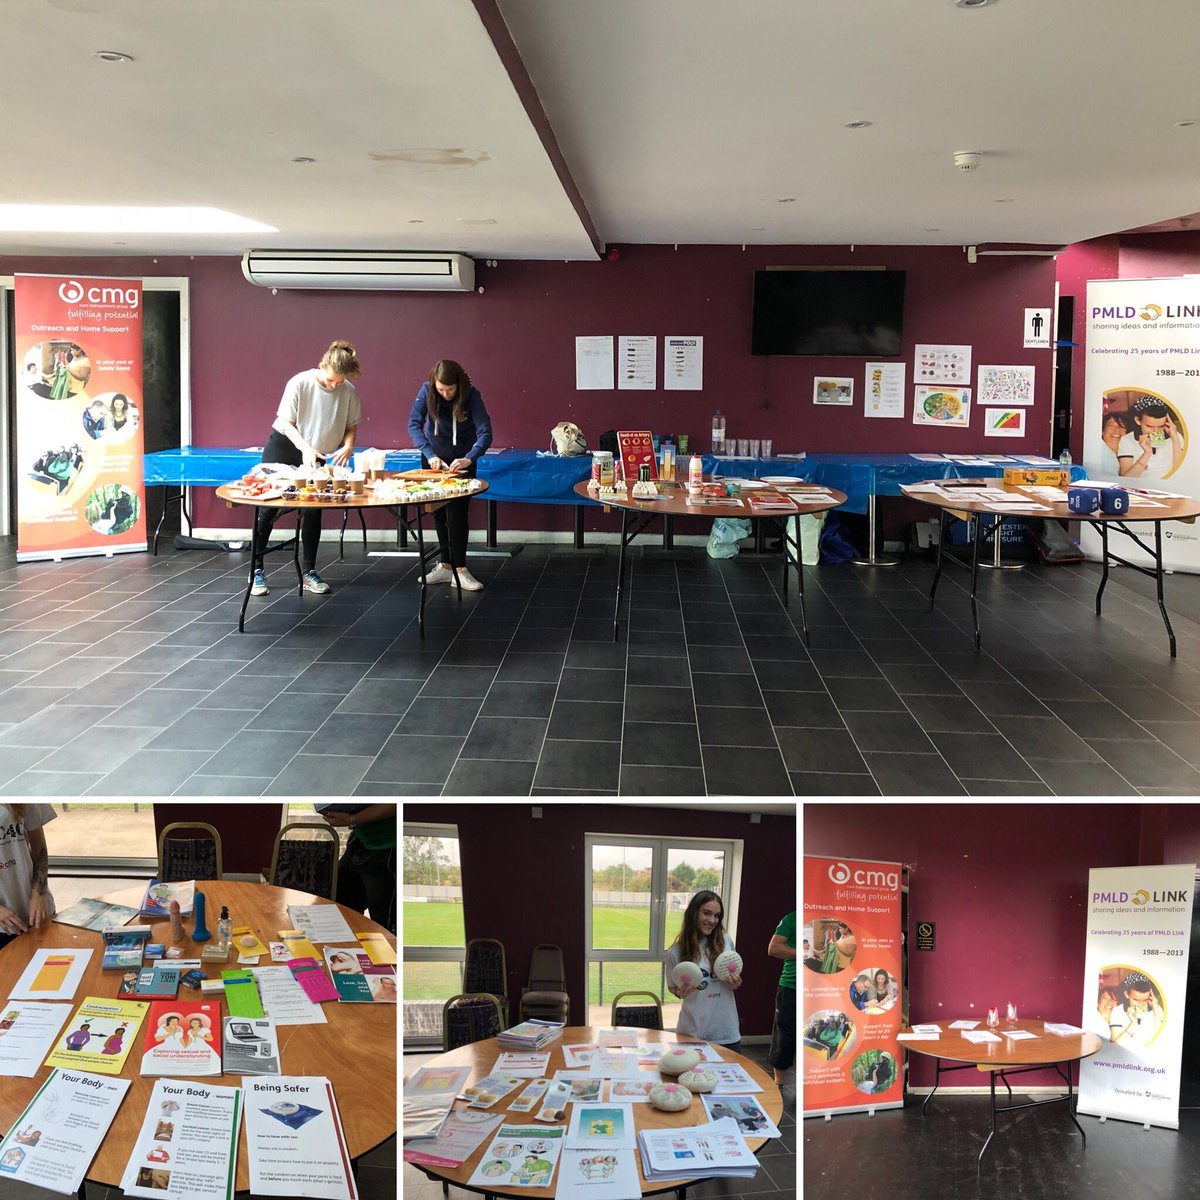 Another great day @CMGCare_Support 'Let's Get Physical' event. An opportunity to promote physical, emotional and sexual health. 5aside footie tournament, #walkingfootball and aerobics. #promotinghealth #tacklinghealthinequalities #gettingfit<br>http://pic.twitter.com/wbH9WUfIB7